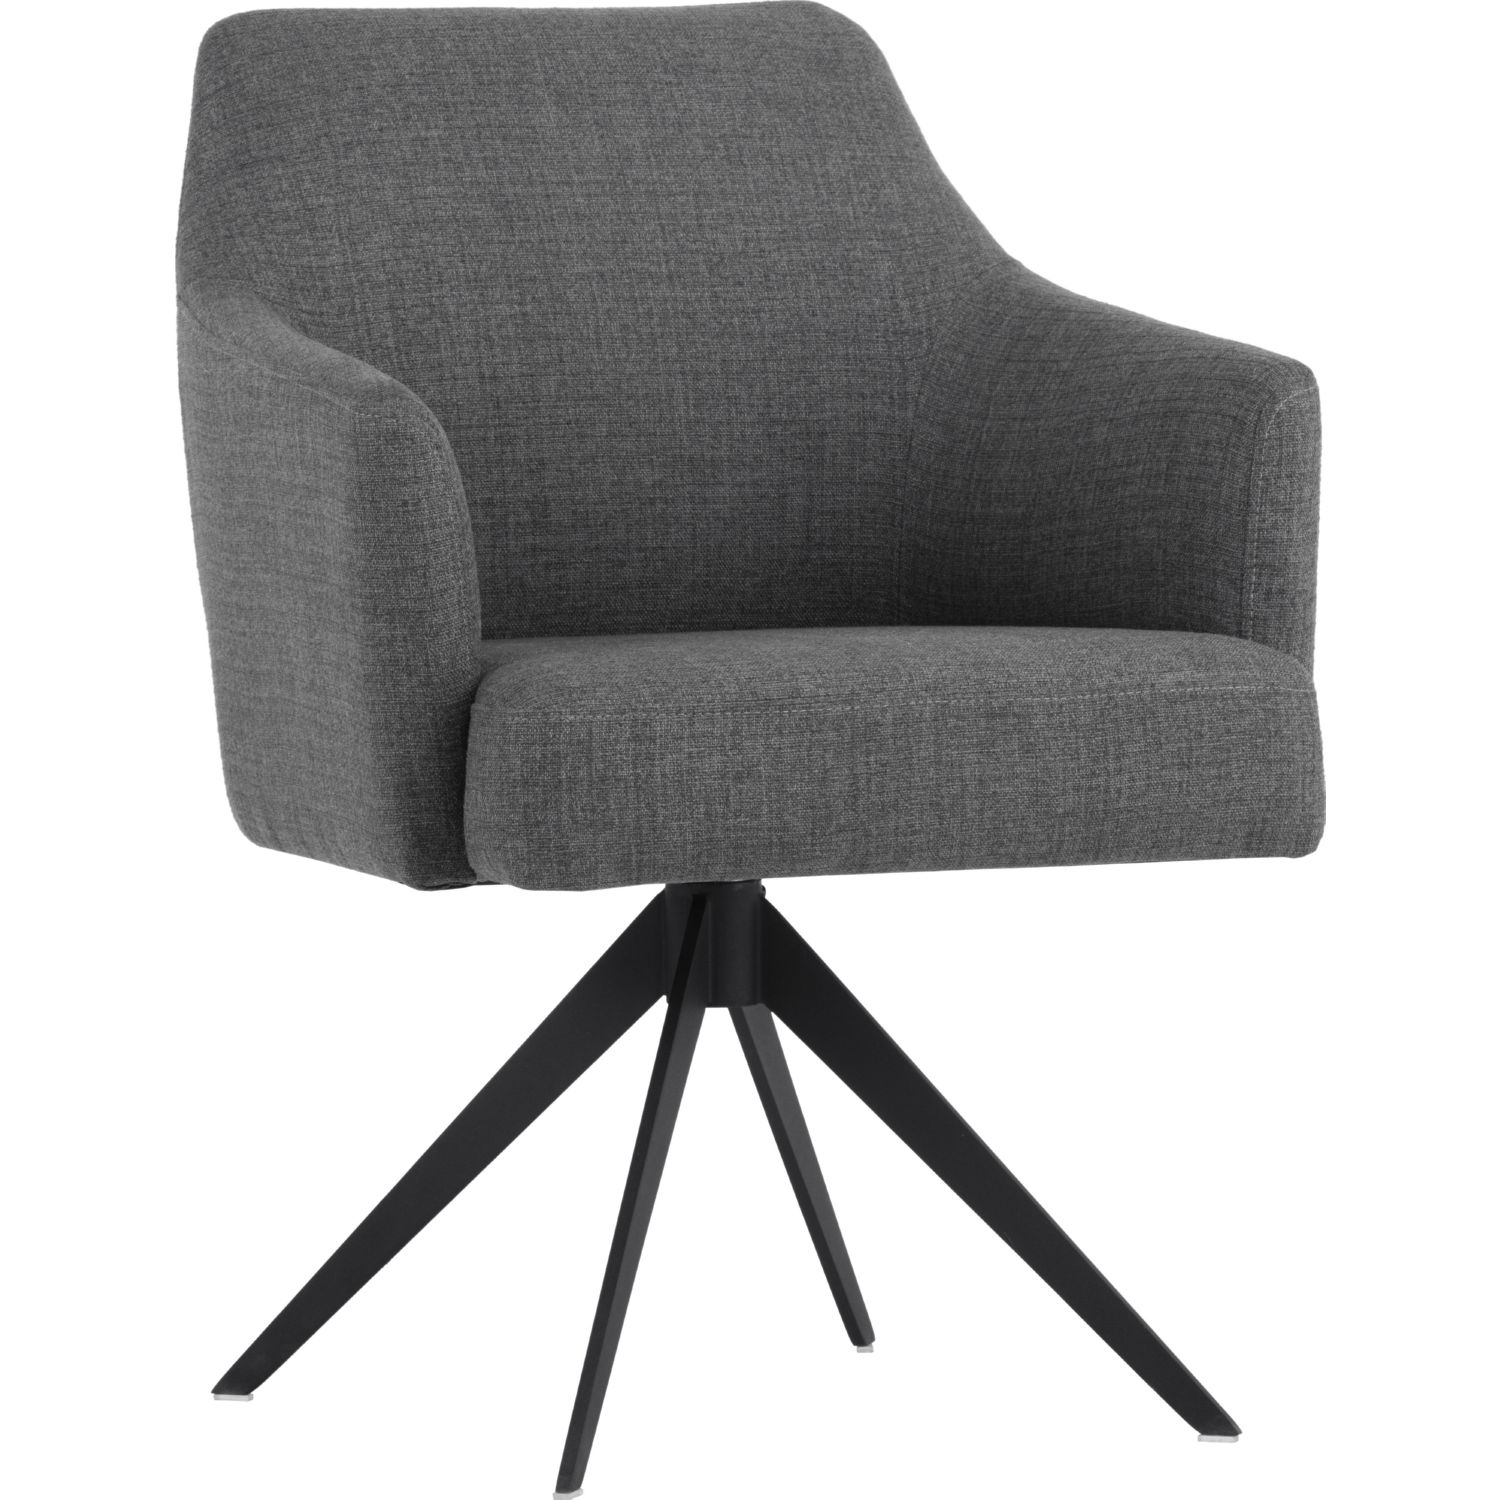 Pleasant Sydney Swivel Dining Chair In Coastal Grey Fabric On Black Steel By Sunpan Ncnpc Chair Design For Home Ncnpcorg